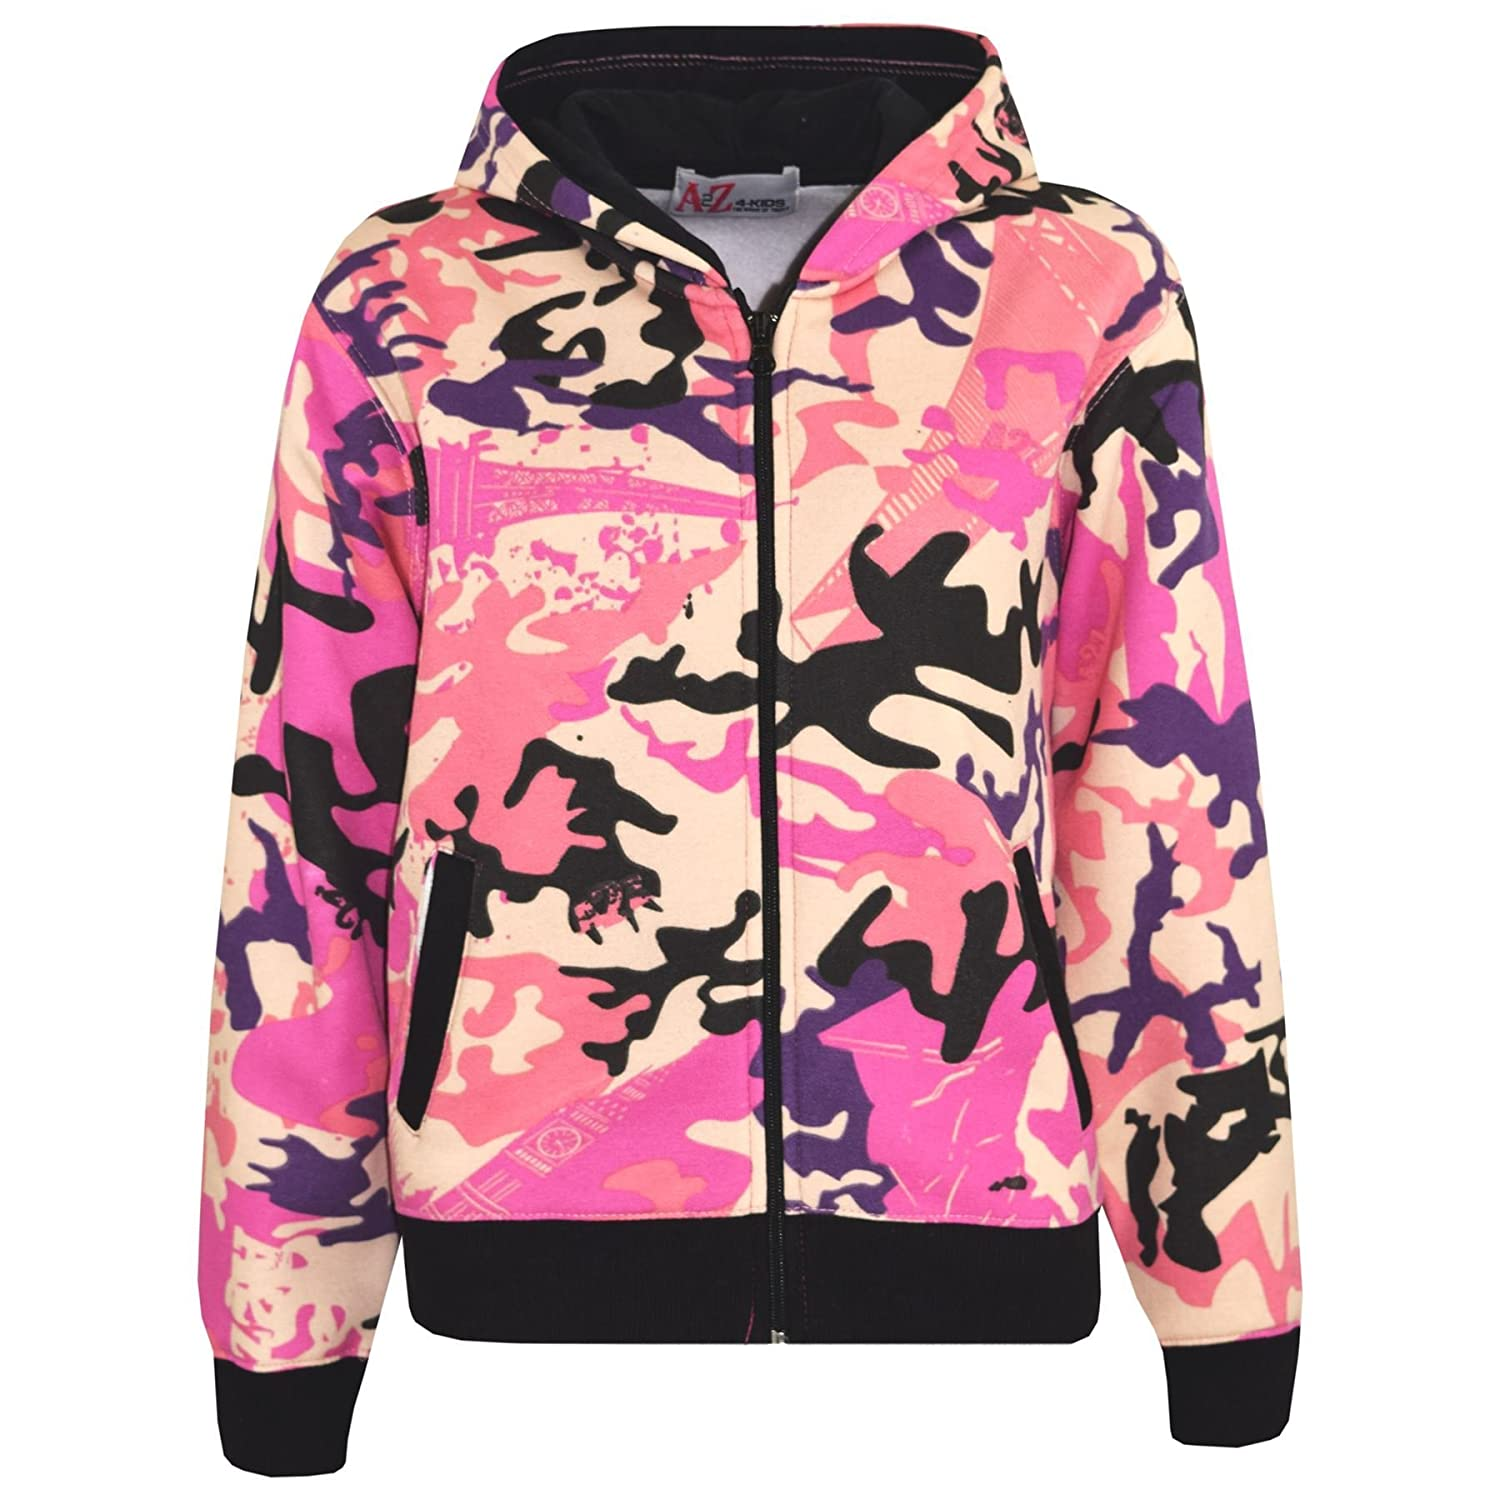 A2Z 4 Kids/® Boys Girls Tracksuit Kids Baby Pink Camouflage Jogging Suit Top Bottom 5-13 Year